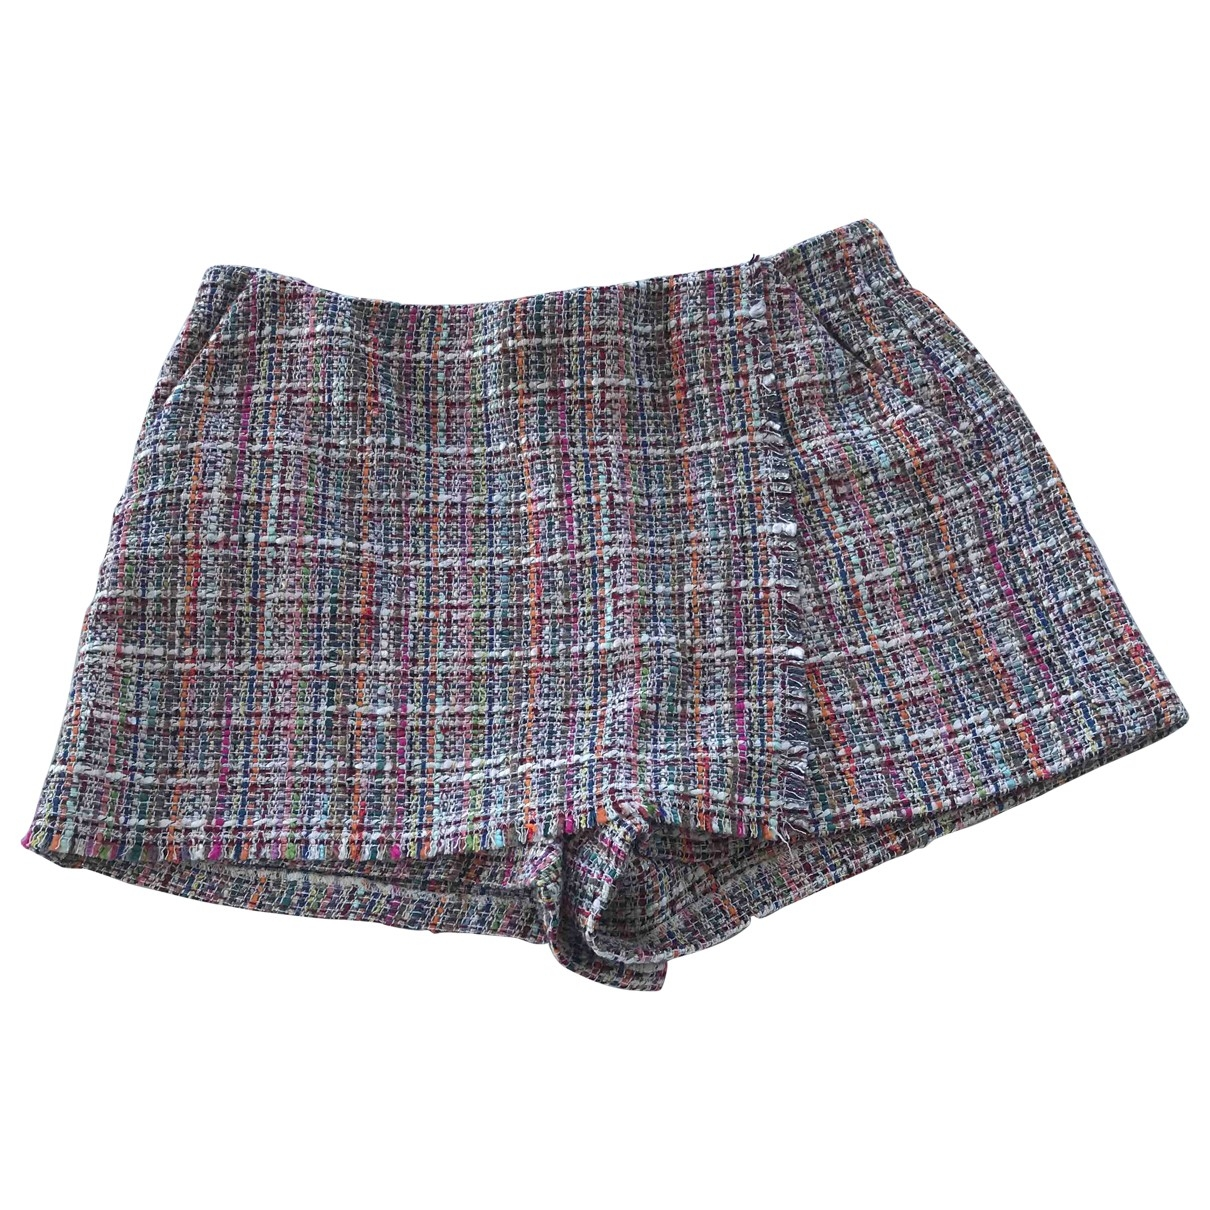 Zara \N Multicolour Tweed Shorts for Women M International